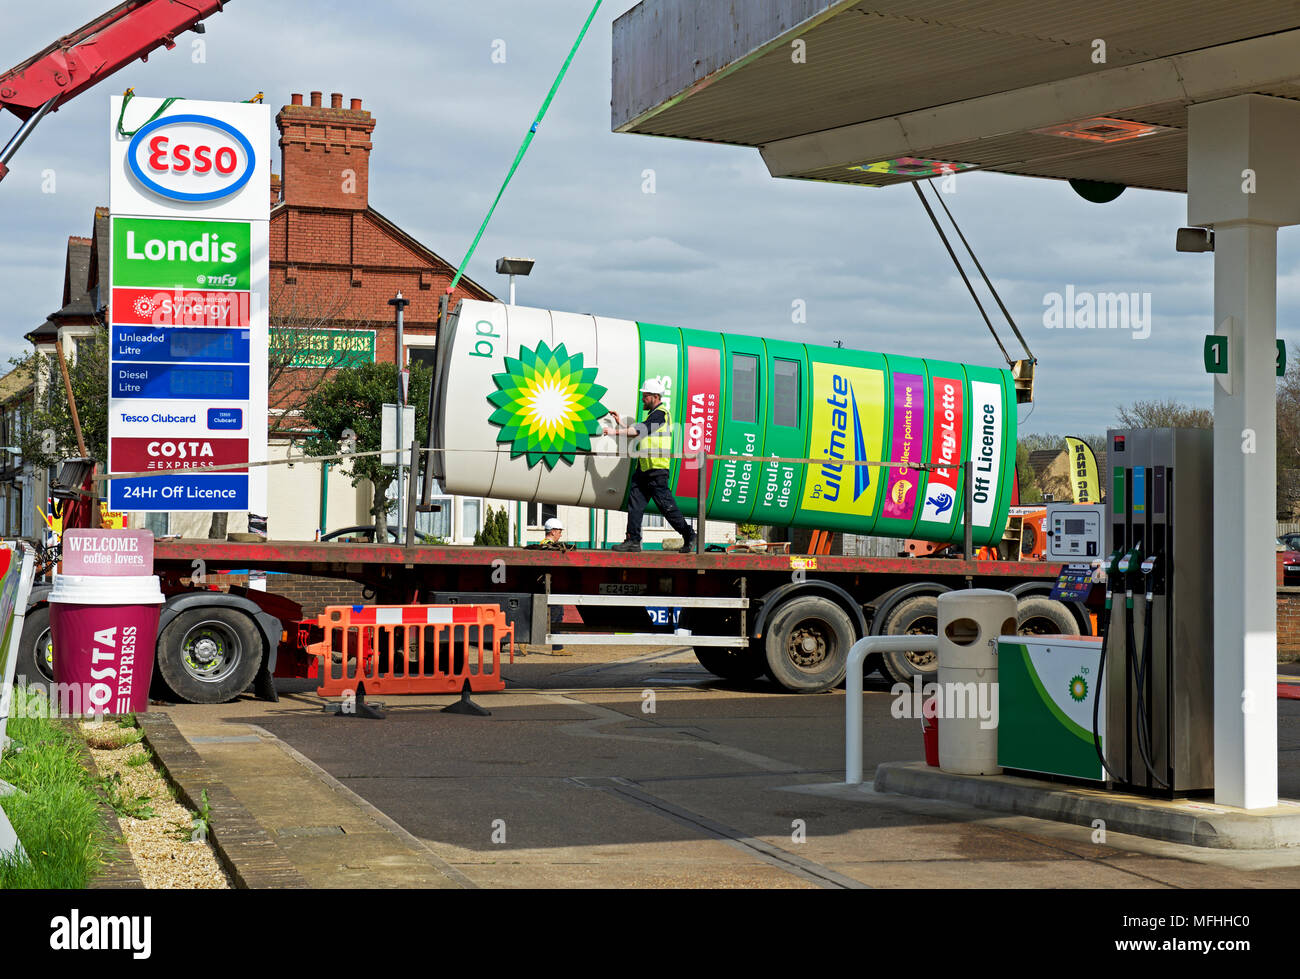 replacing-bp-sign-with-esso-sign-at-a-pe